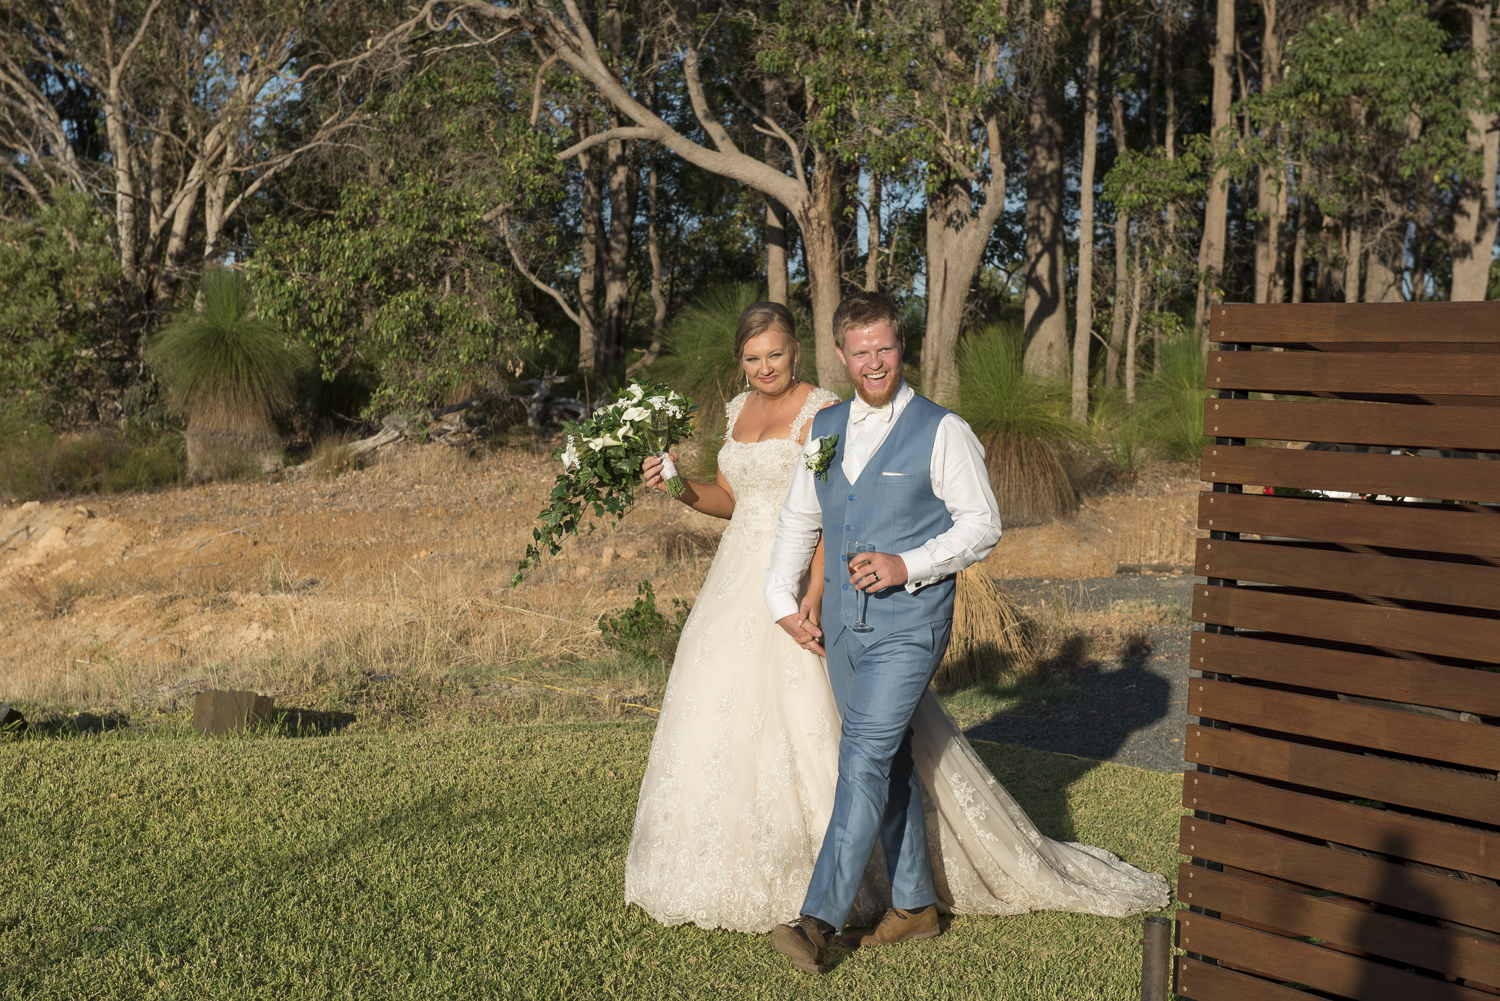 Barton Jones Winery Donnybrook Boyanup Wedding Photographer-55.jpg